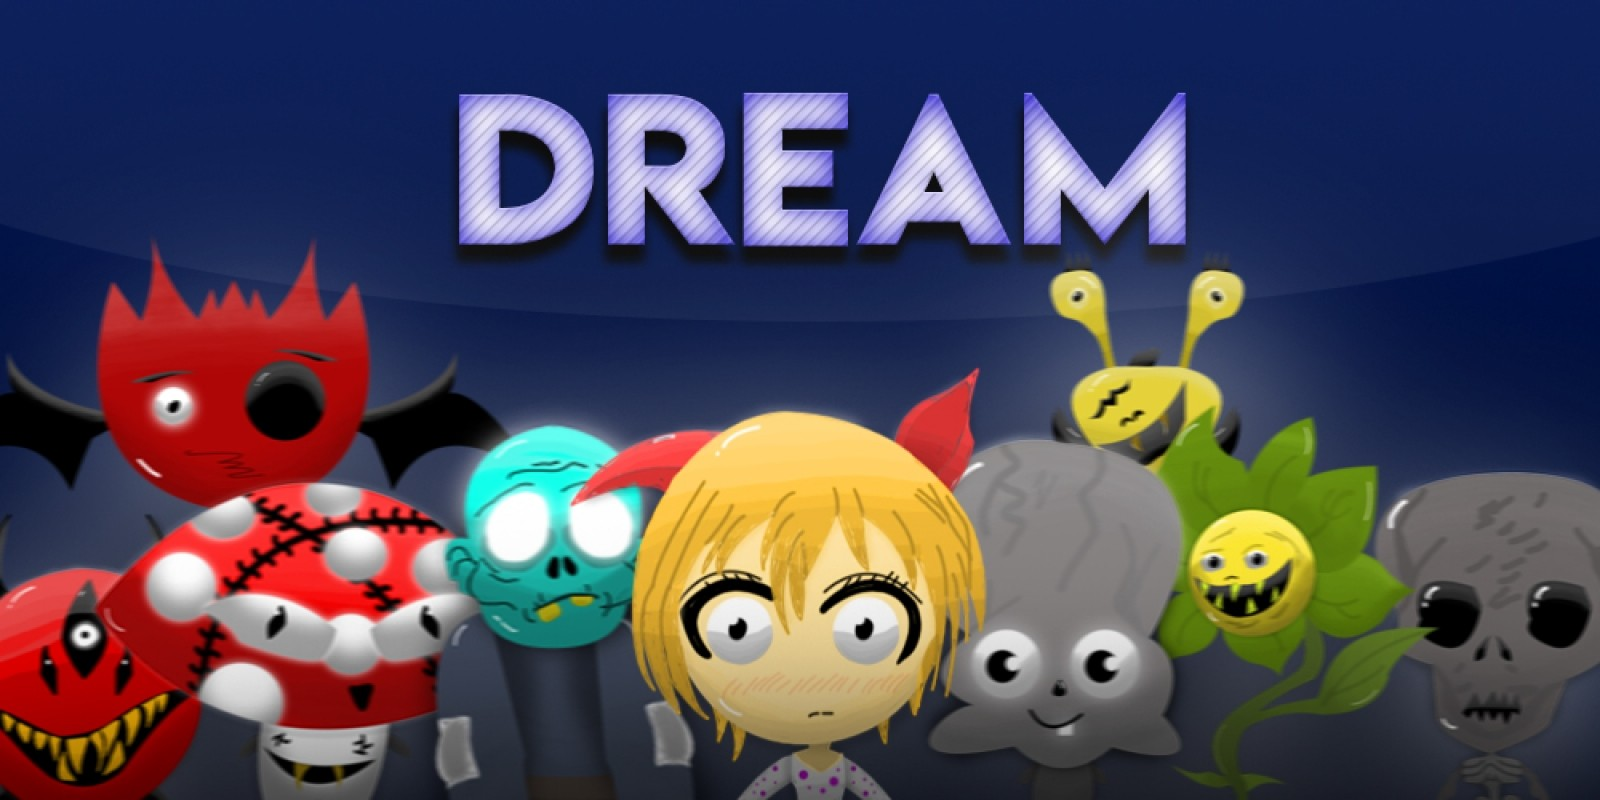 Dream - Complete Unity Project